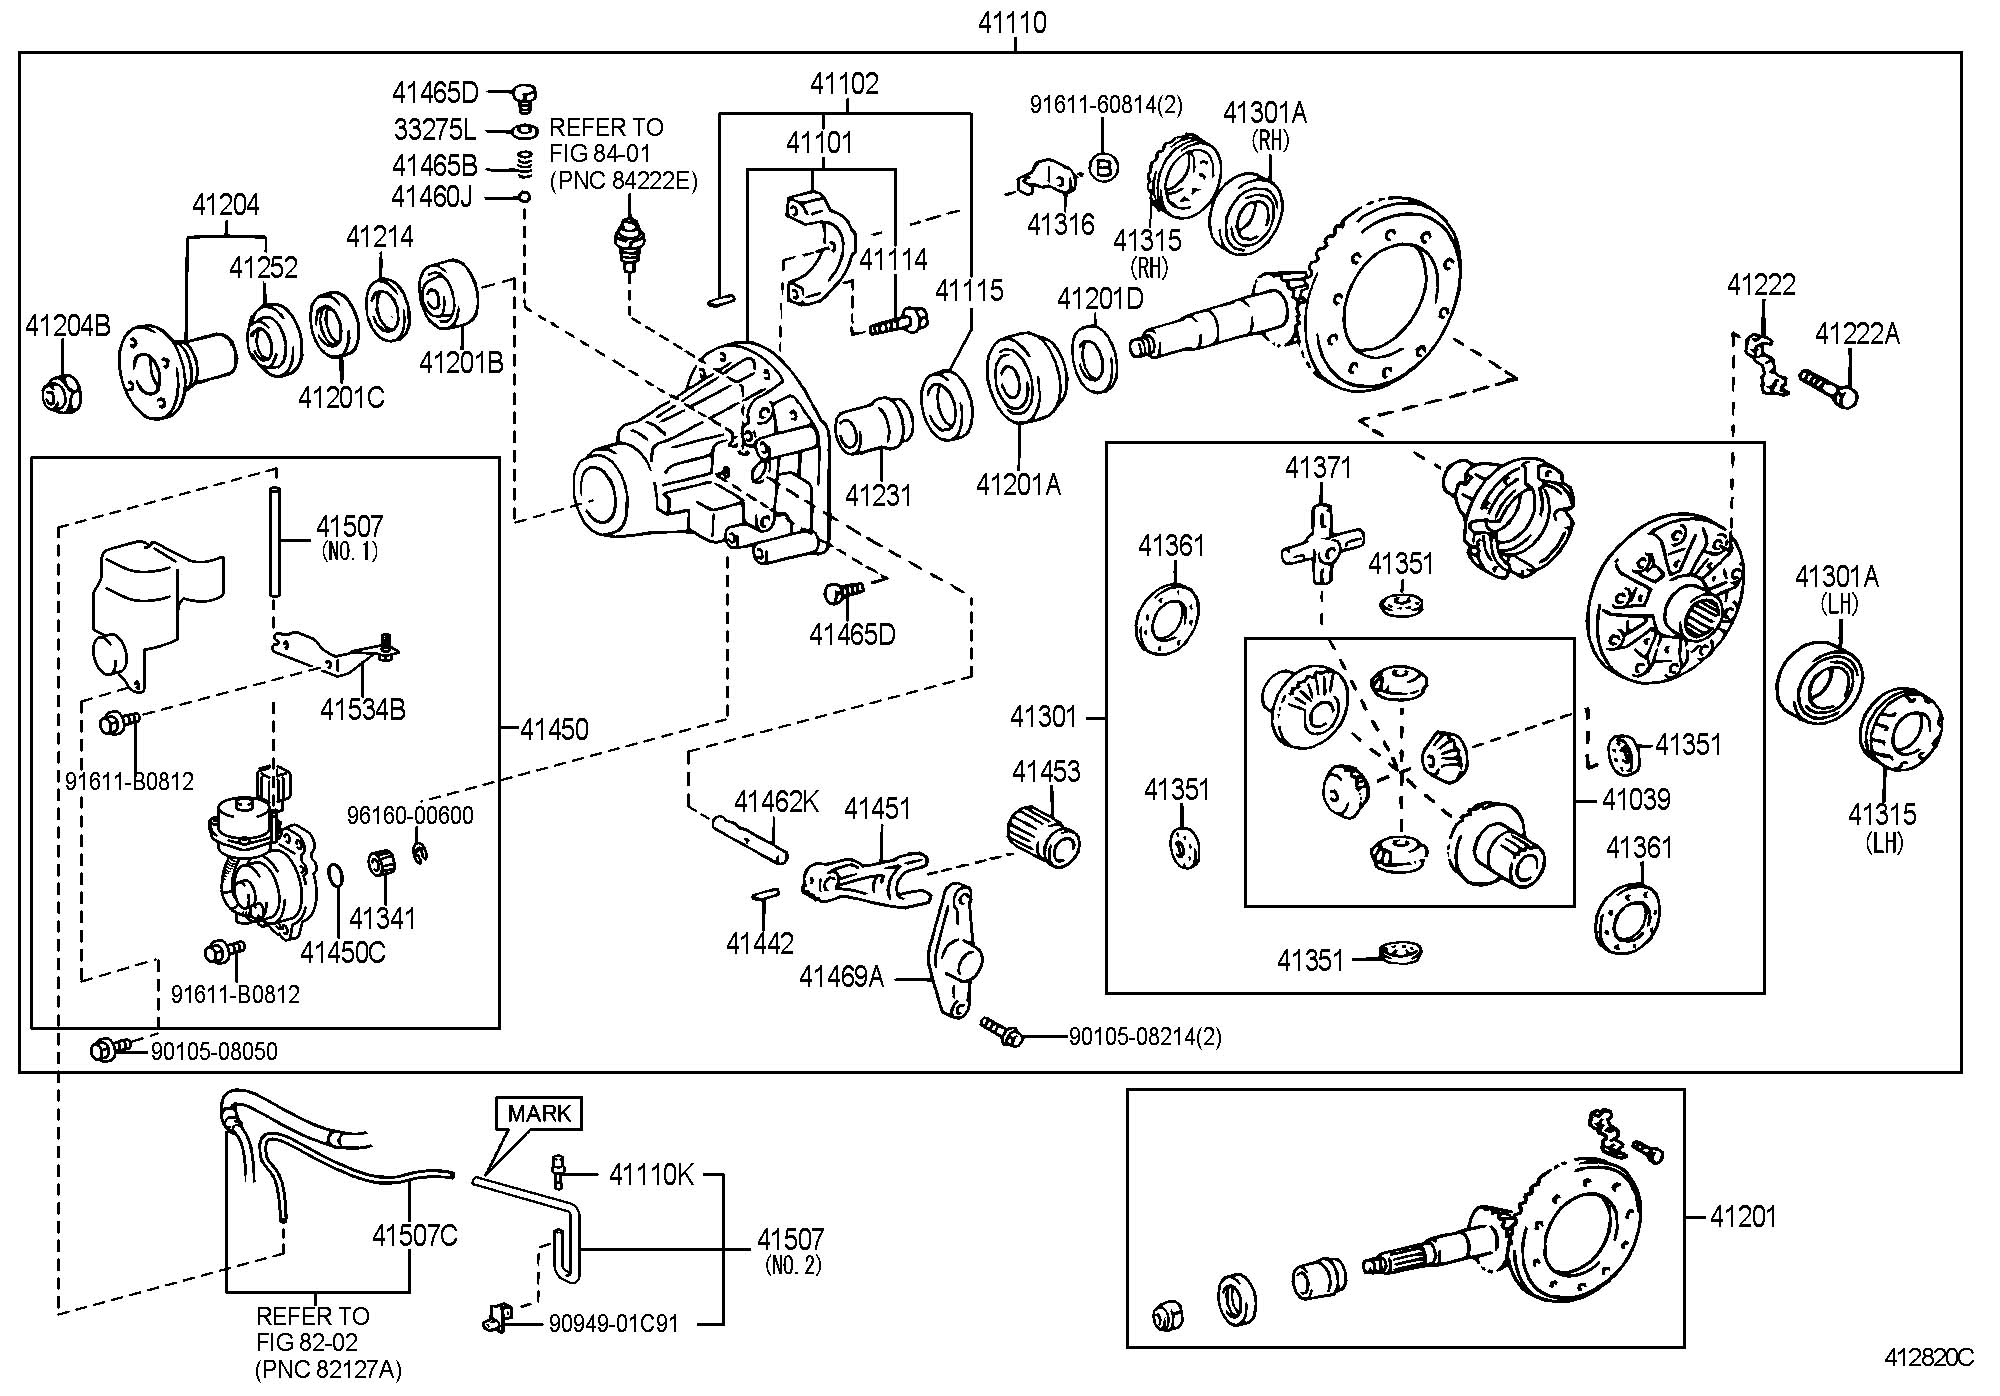 Ford F Fuse Box Trusted Wiring Diagram Data Schema Schematic Diagrams Turn Signals Circuit Symbols Harness Panel Explained Electrical Parts Super Duty Steering With Description likewise 2006 Acura Tl Wiring Pdf additionally Blower Motor On A 2002 Ford Expedition likewise 2008 Acura Rdx Fuse Box besides 2000 Acura Tl Starter Relay Location. on 2006 acura tl fuse box diagram besides 2005